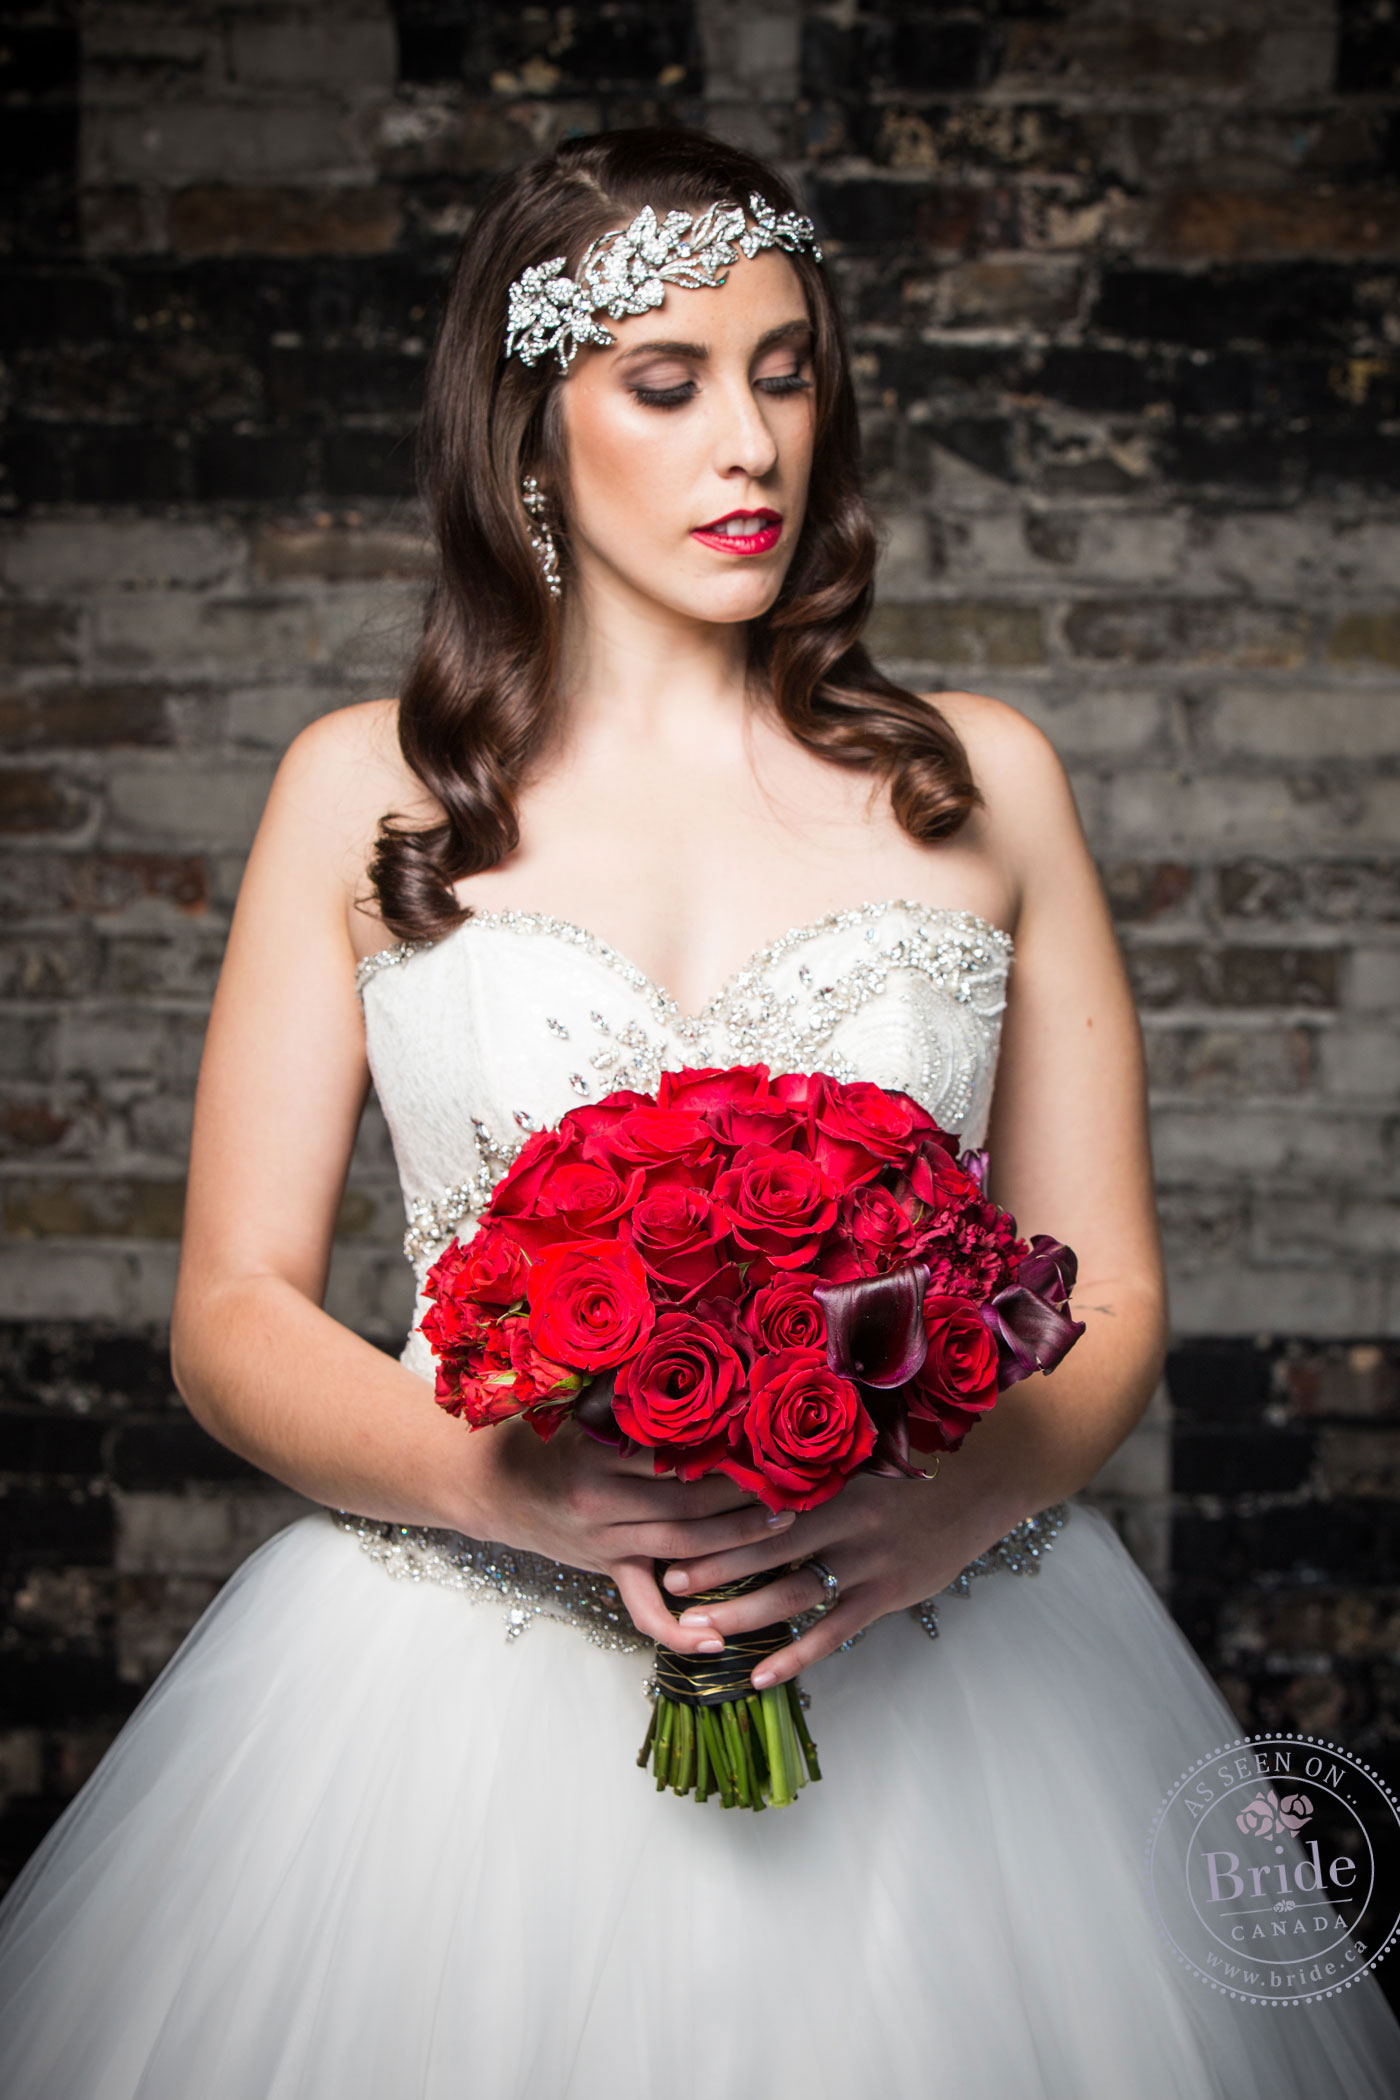 bride.ca | styled shoot: warehouse wedding at the burroughes